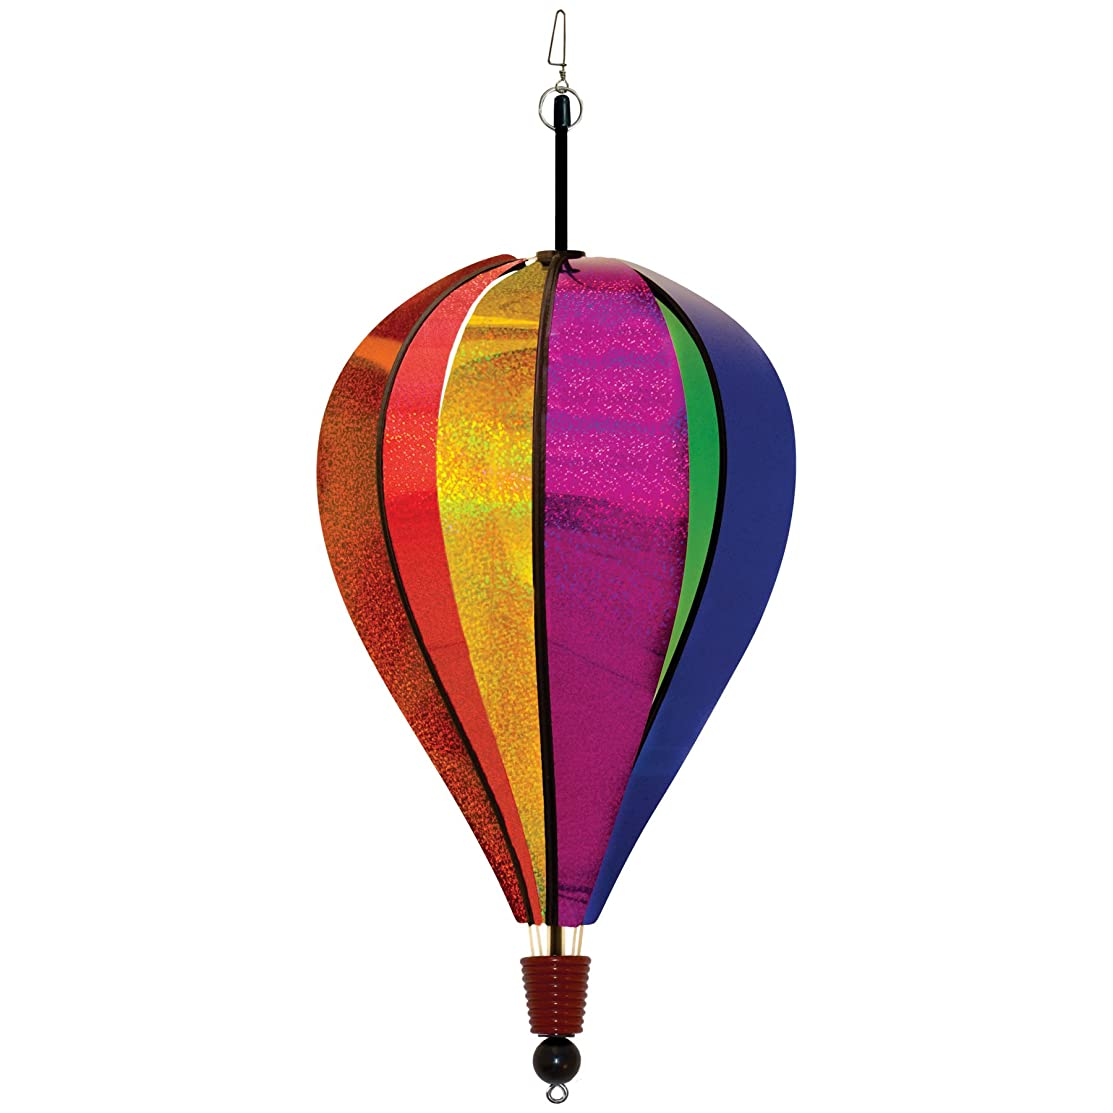 In the Breeze Glitter 6-Panel Hot Air Balloon